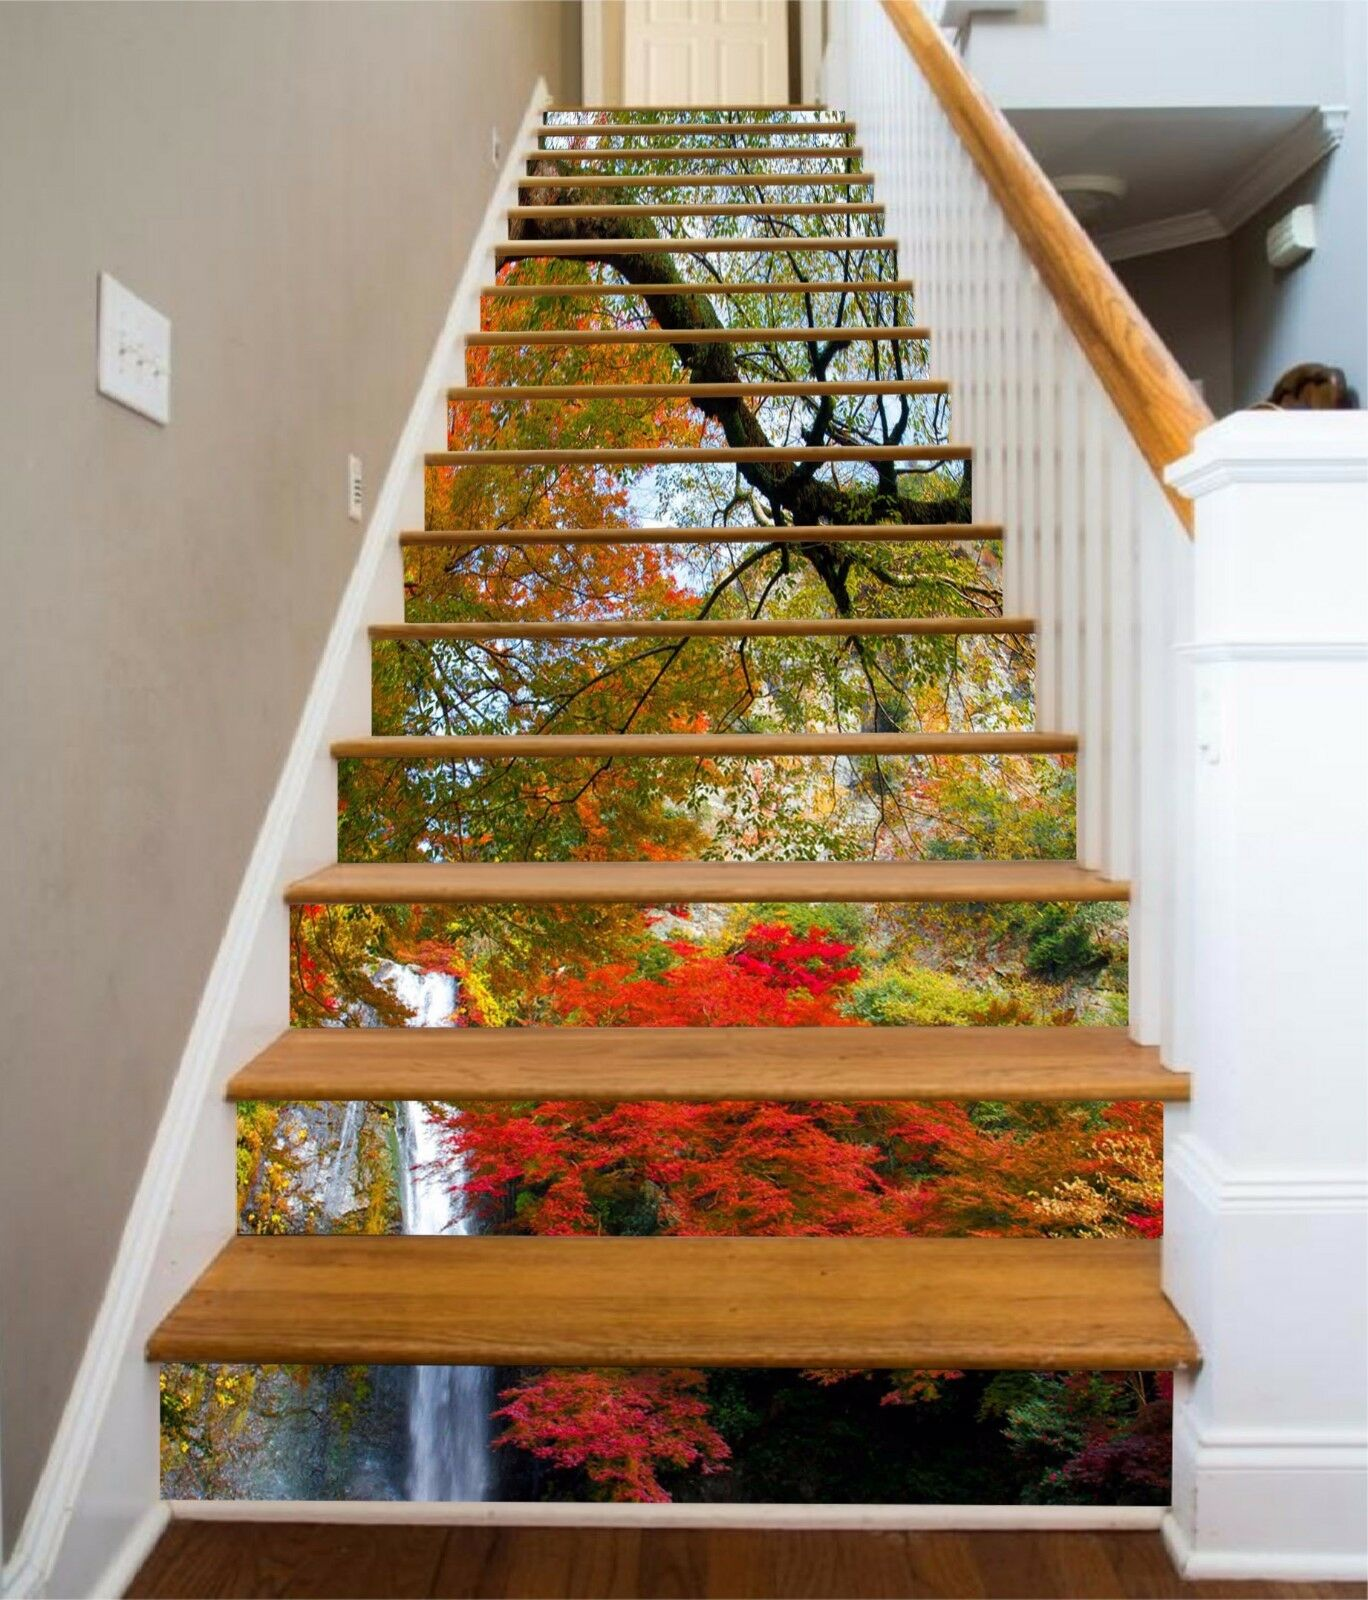 3D color Trees 201 Stairs Risers Decoration Photo Mural Vinyl Decal Wallpaper US